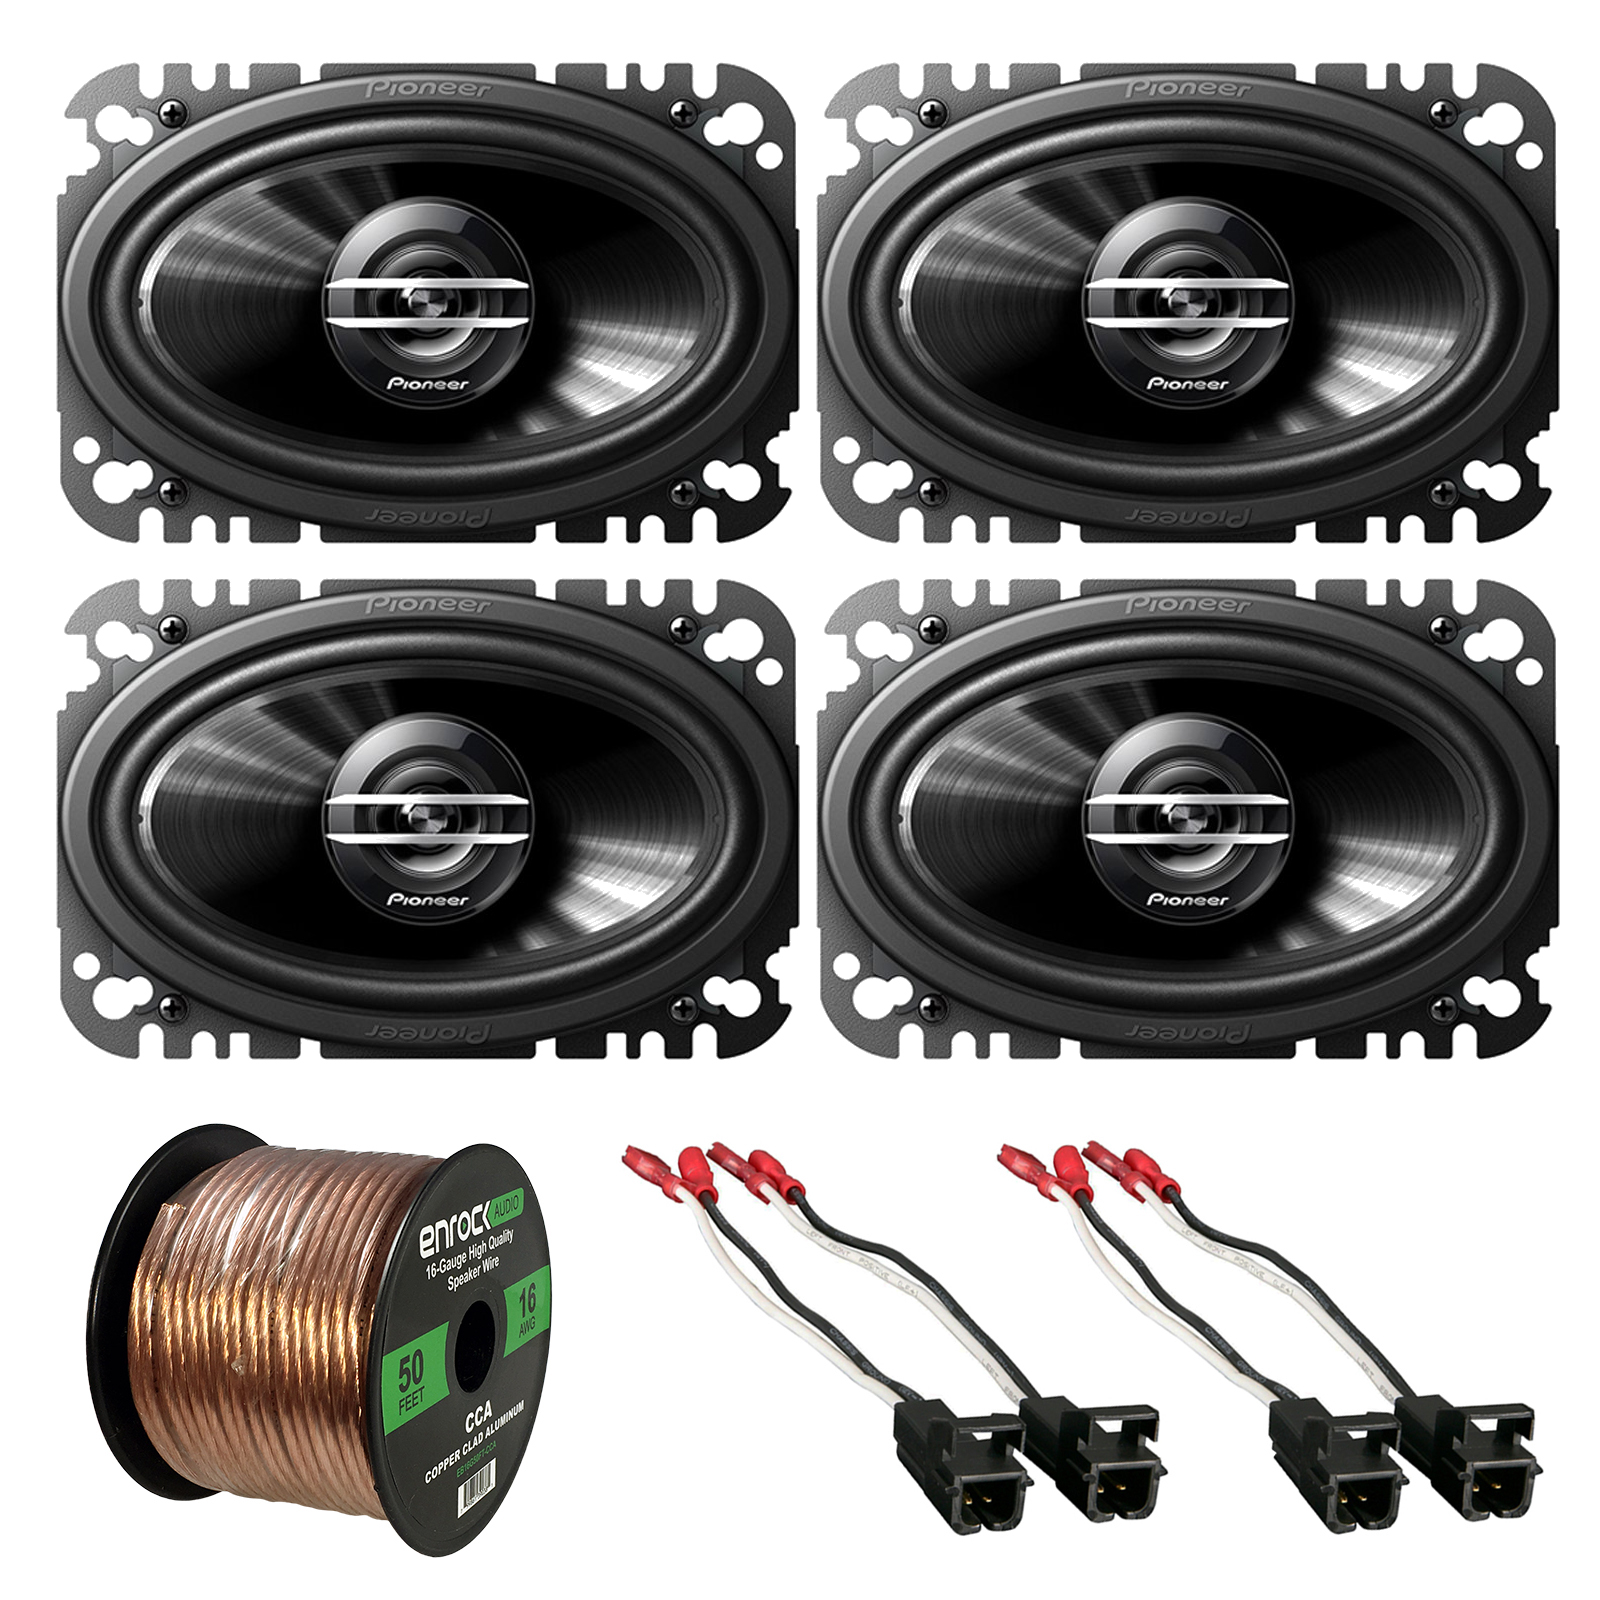 "2 x Pioneer TSG4620S 4x6"" 2-Way 200W Car Speakers (2 pairs), 2 x Metra 72-4568 Speaker Wire Harness for Select GM Vehicles, Enrock Audio 16-Gauge 50 Foot Speaker Wire"